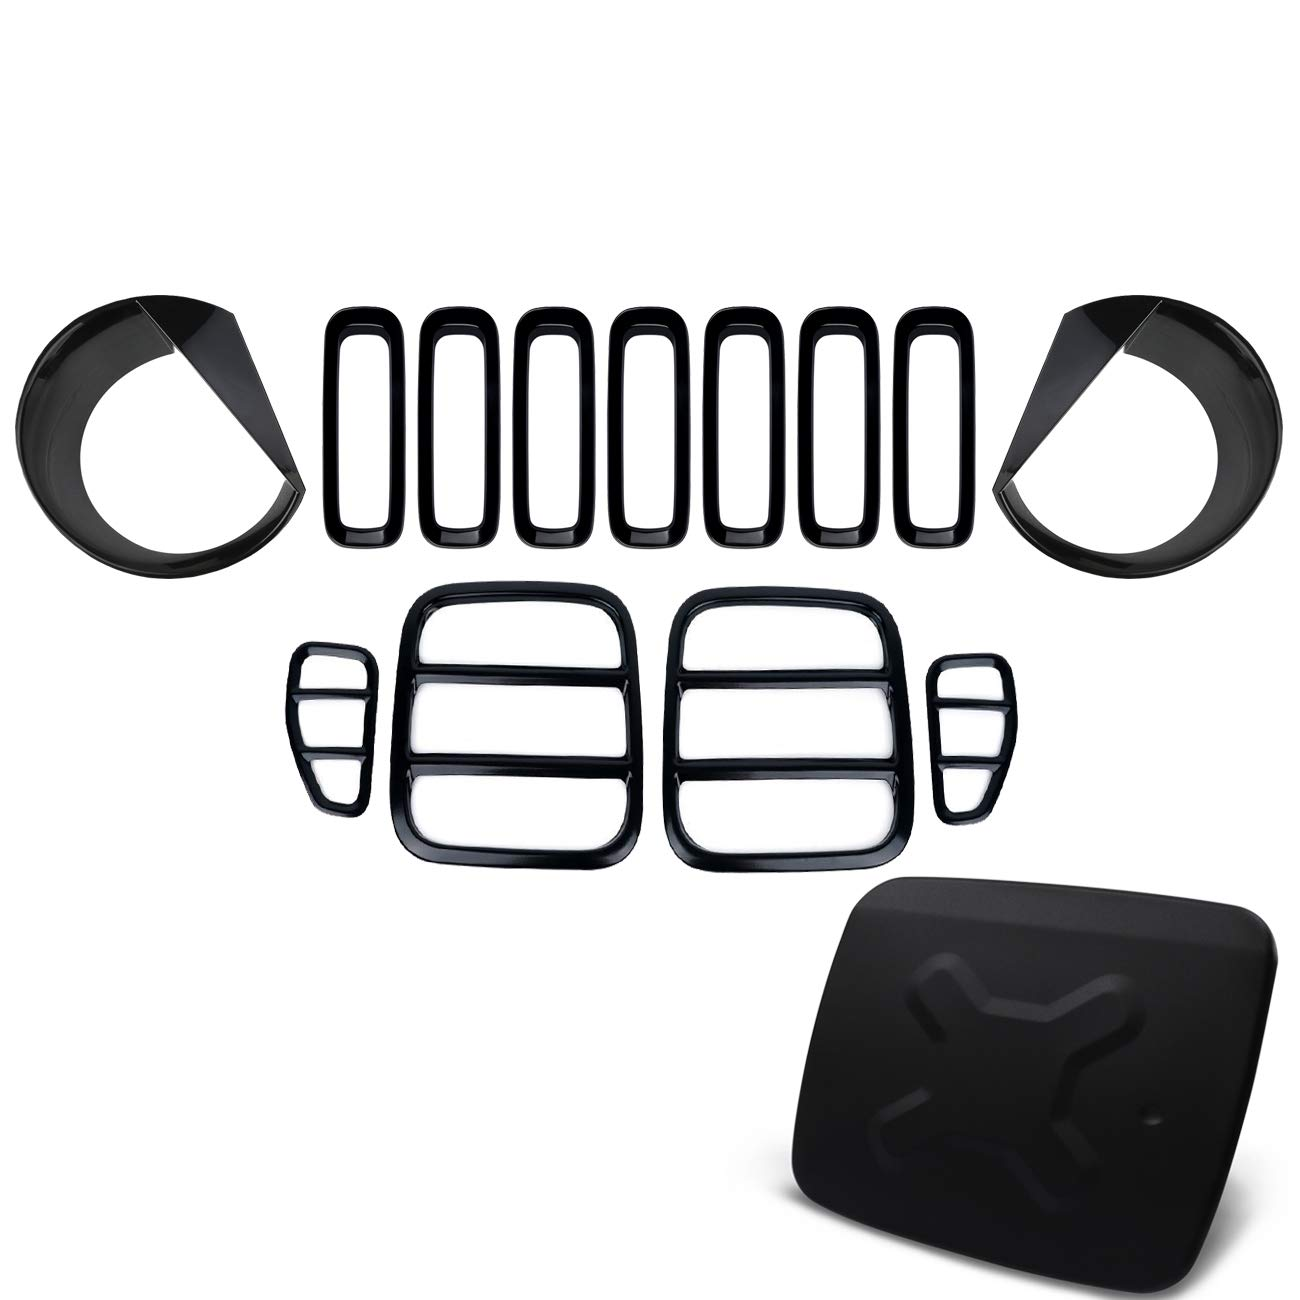 Yoursme Door Fuel Filler Cap, Front Mesh Grilles, Headlight and Taillight Covers for Jeep Renegade 2015 2016 2017 2018 - Black Exterior Trim Kit Set 14PCS